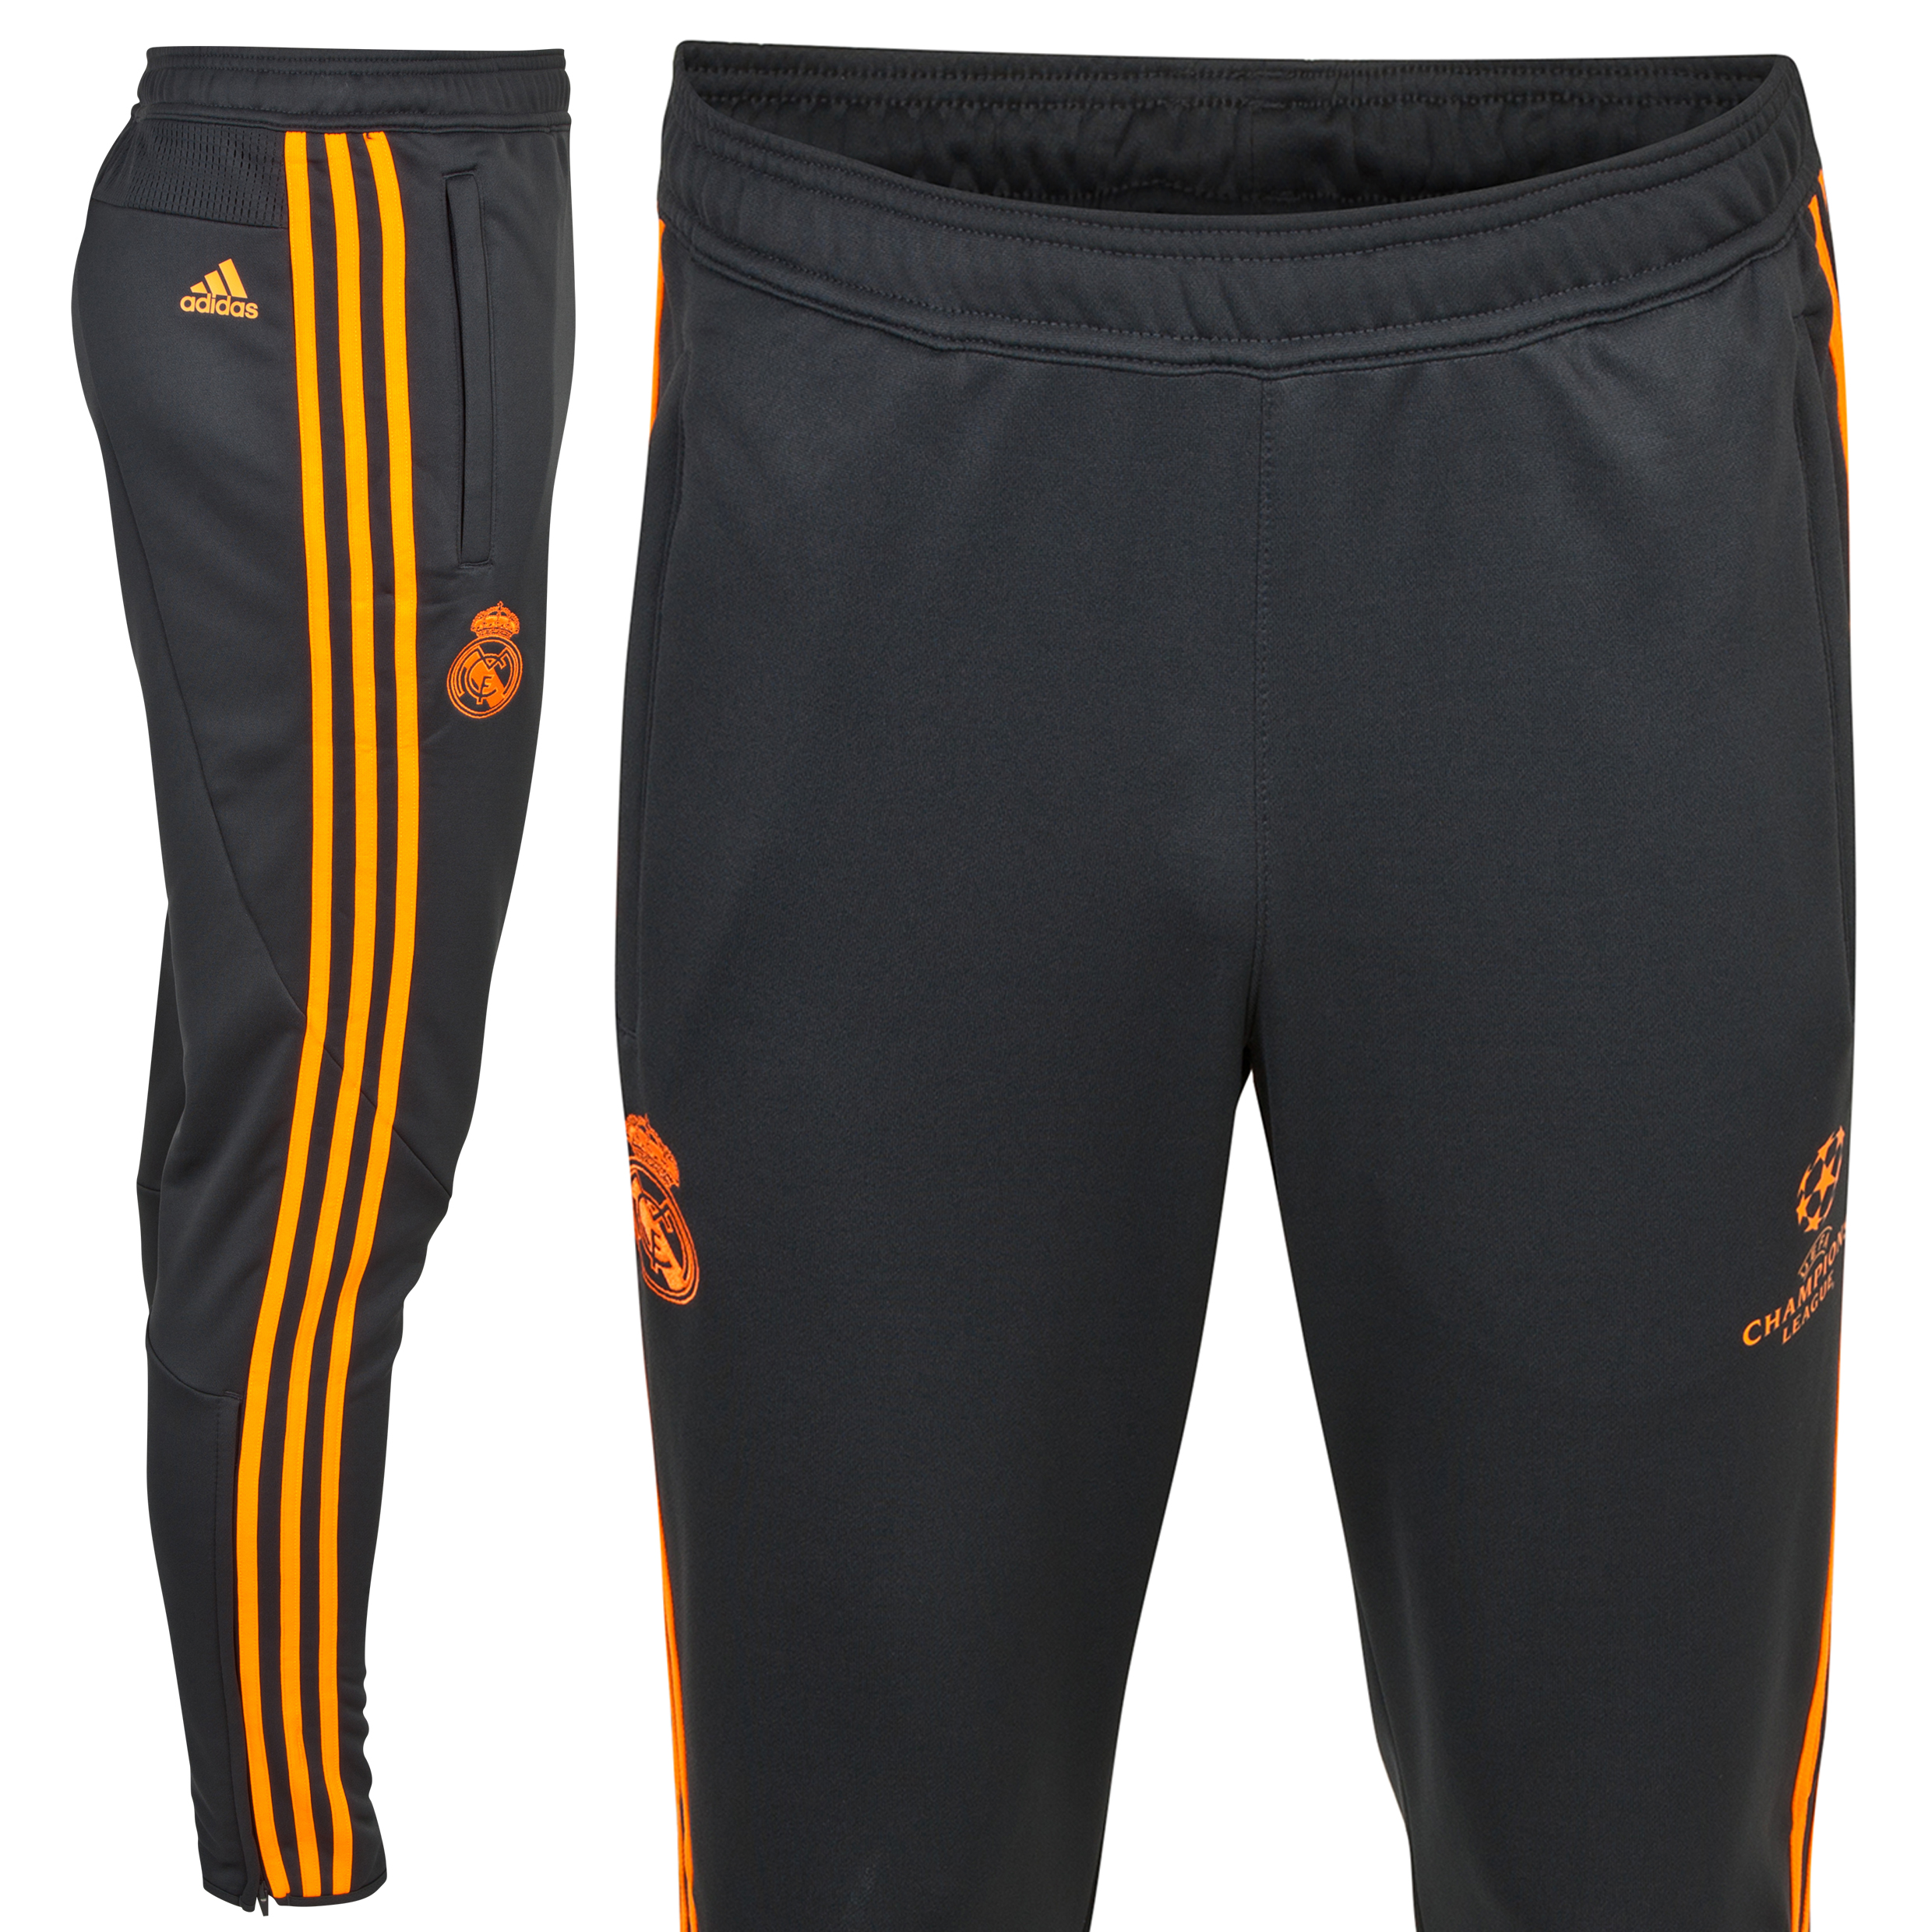 Real Madrid UCL Training Pant - Dark Shale/Zest